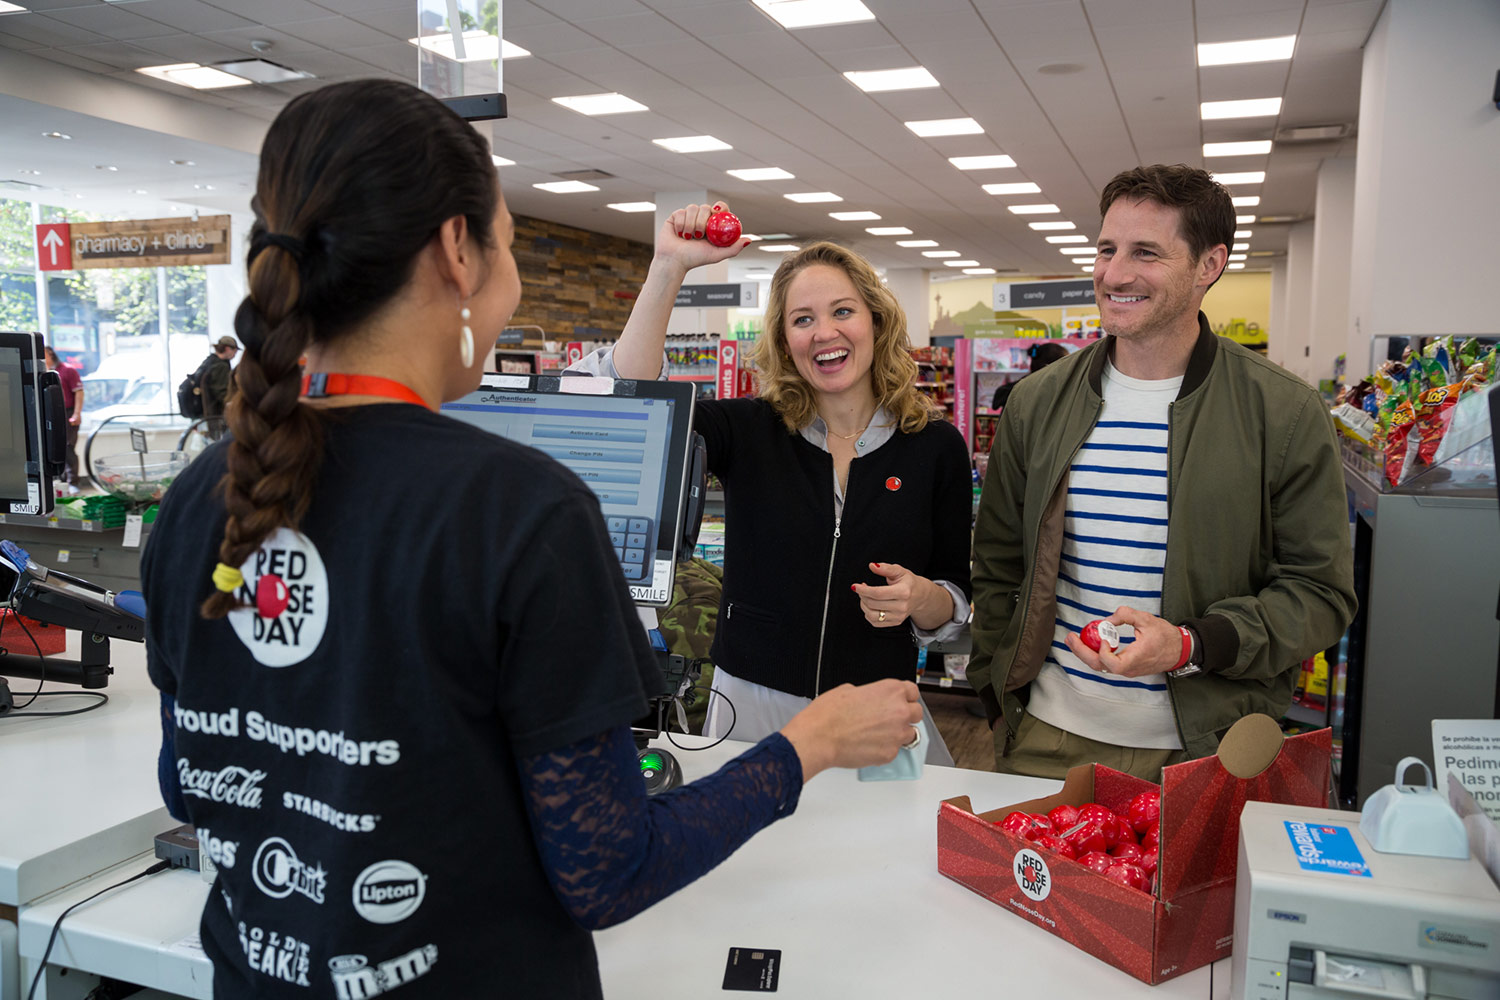 Two visitors celebrate purchasing Red Noses at a Walgreens store.